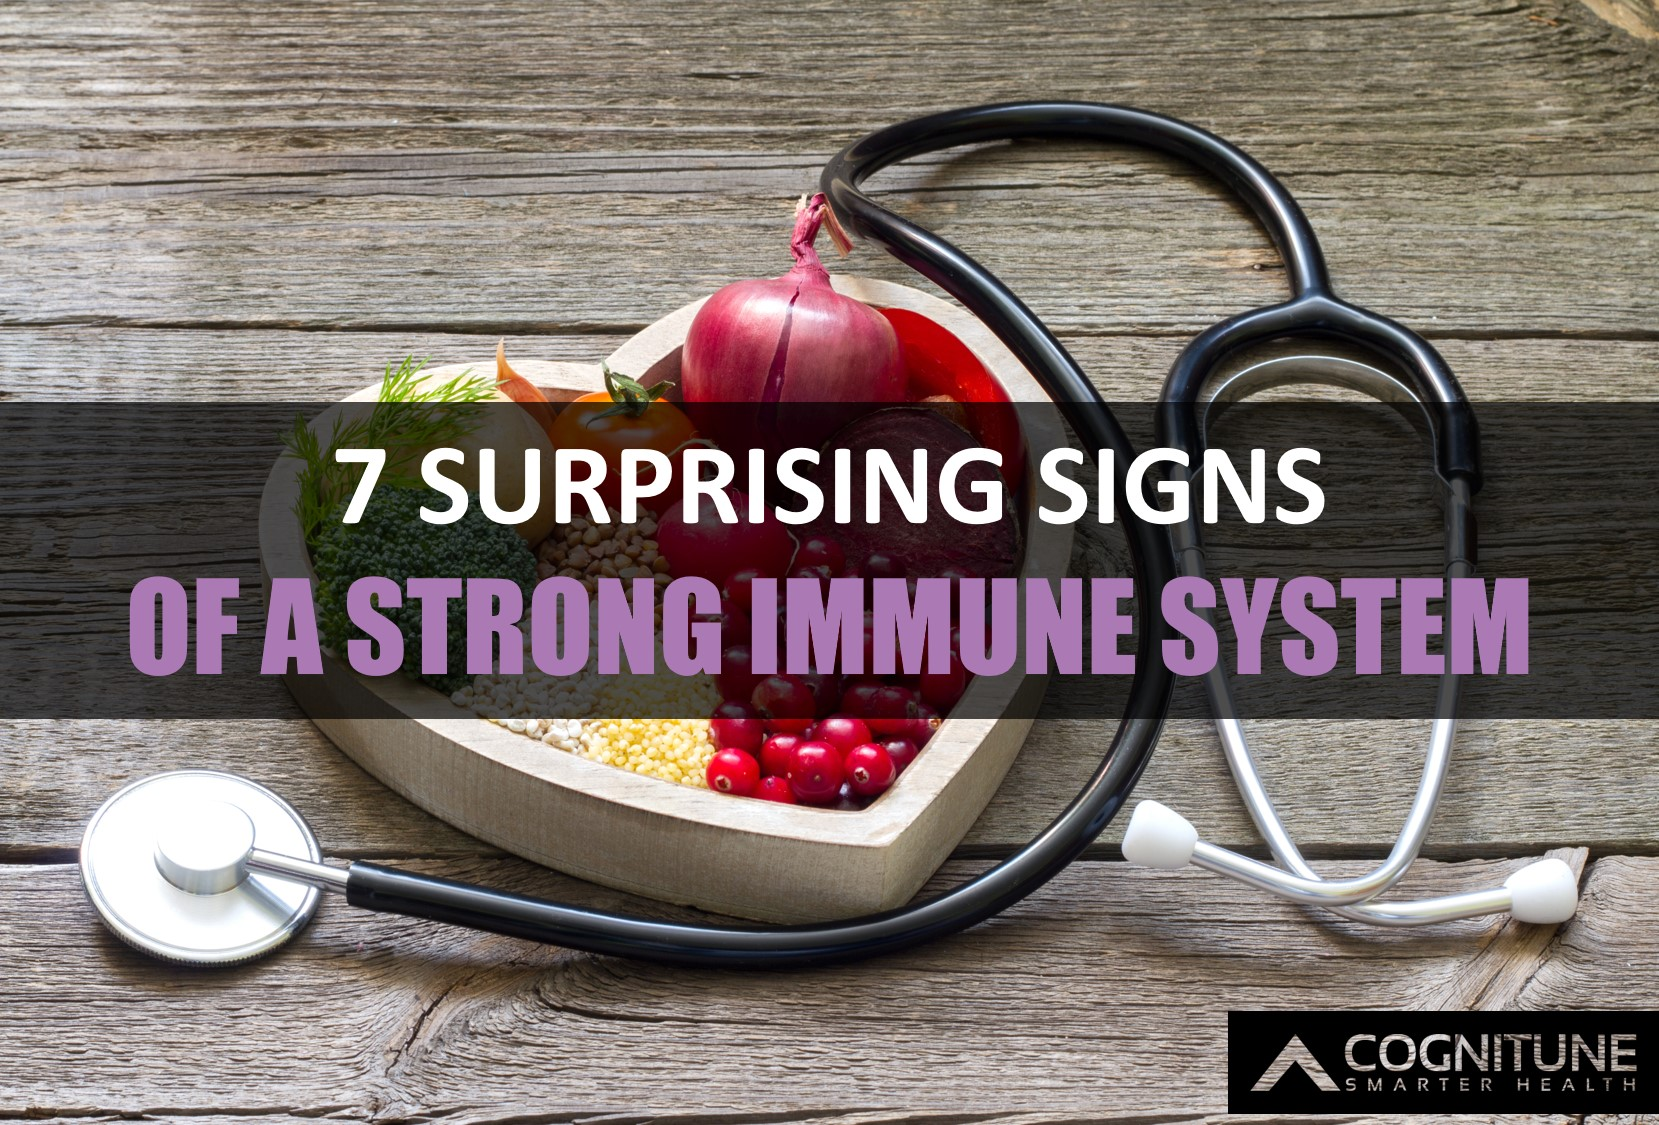 Seven surprising indicators of a healthy immune system